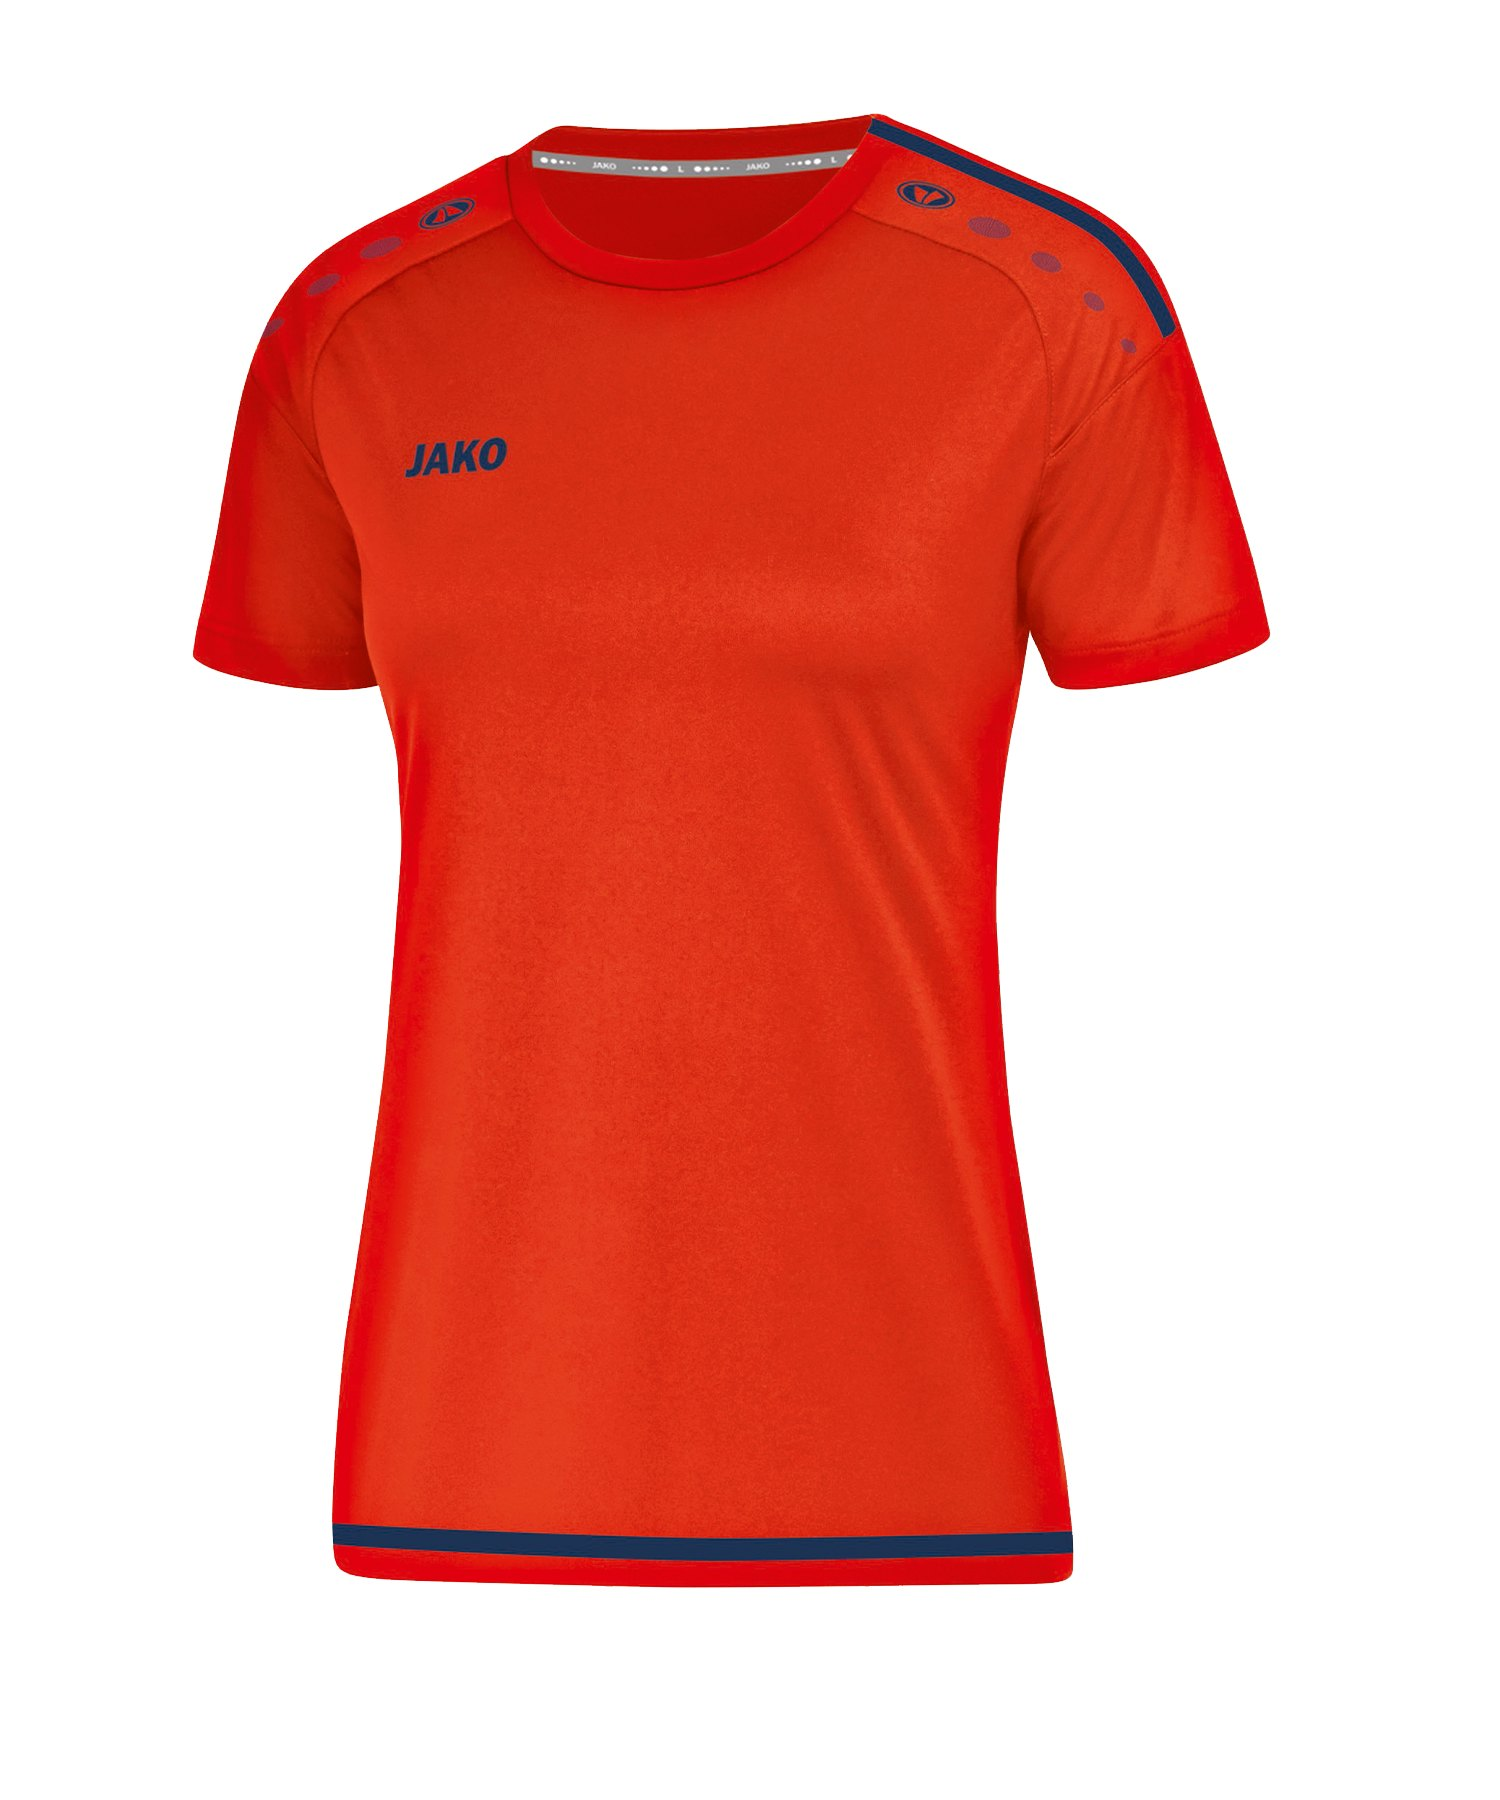 Jako Striker 2.0 Trikot kurzarm Damen Orange F18 - orange